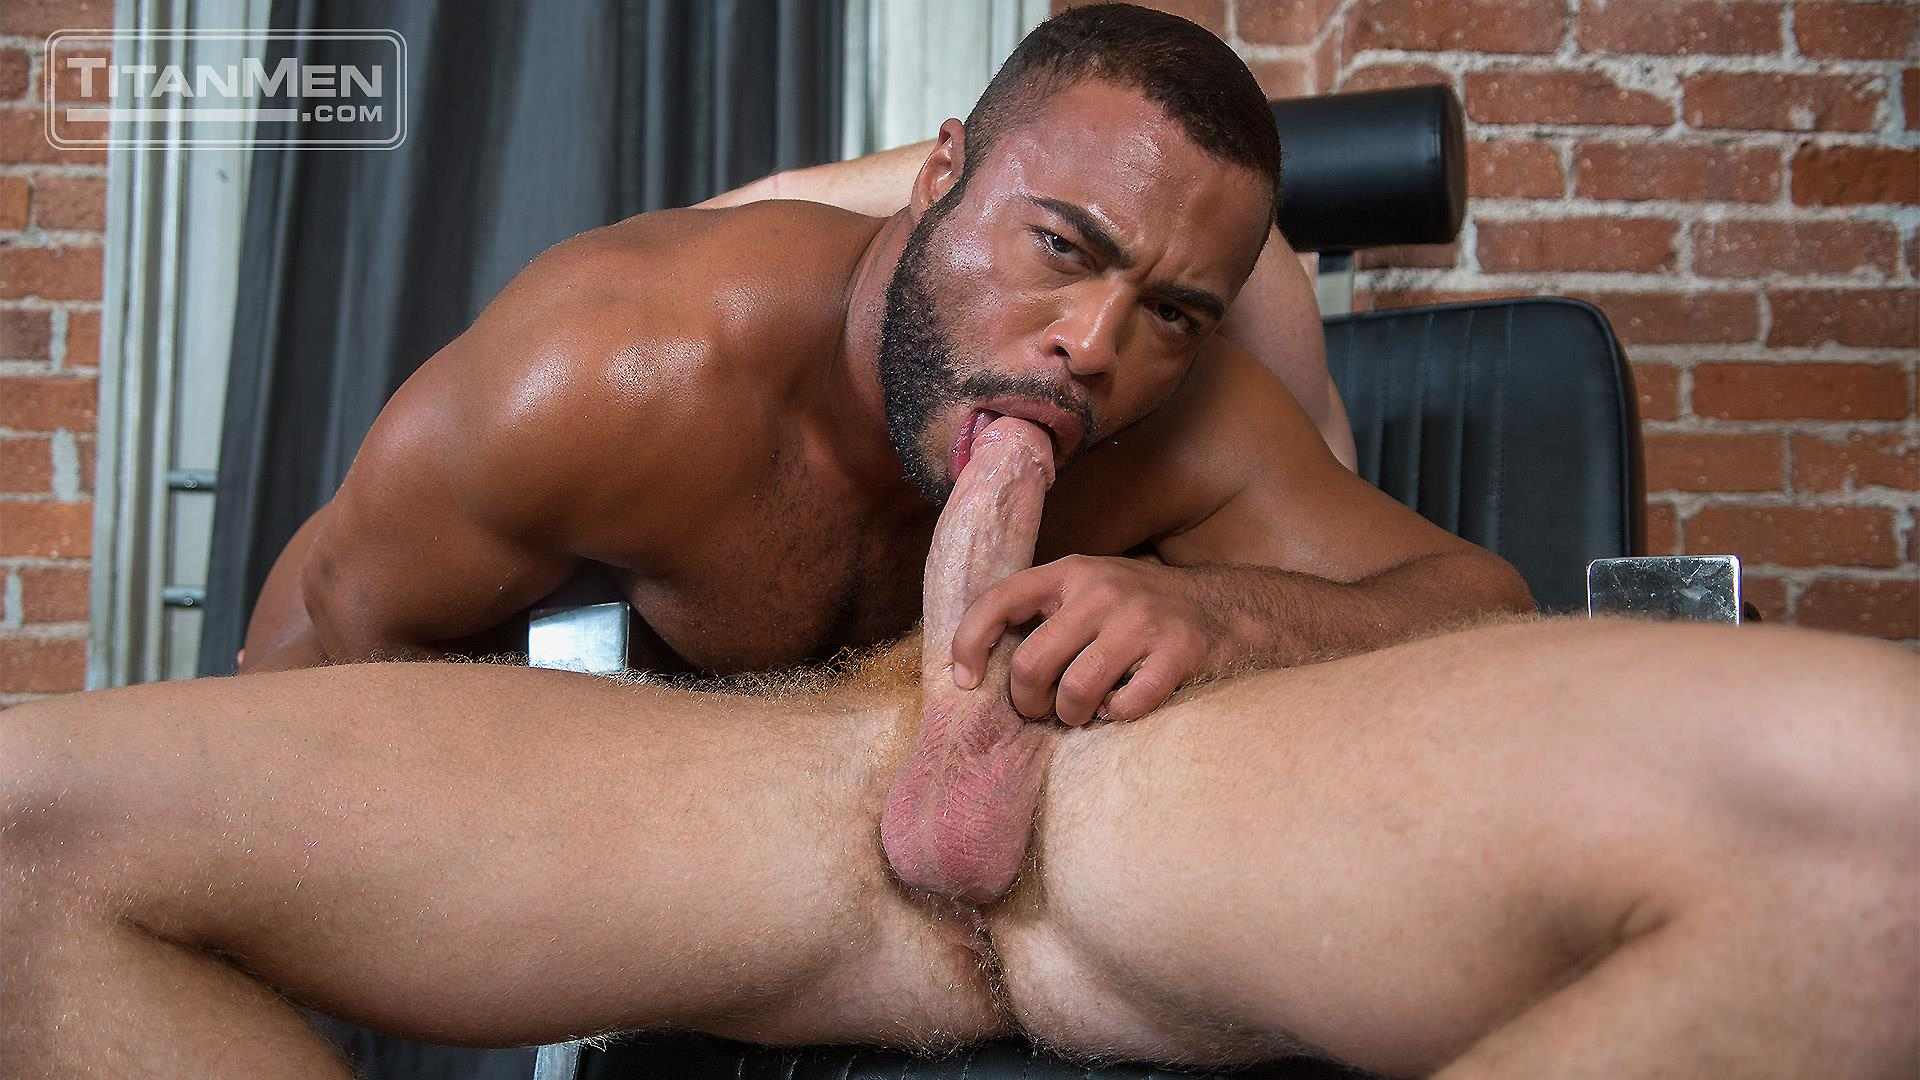 porno interracial gay